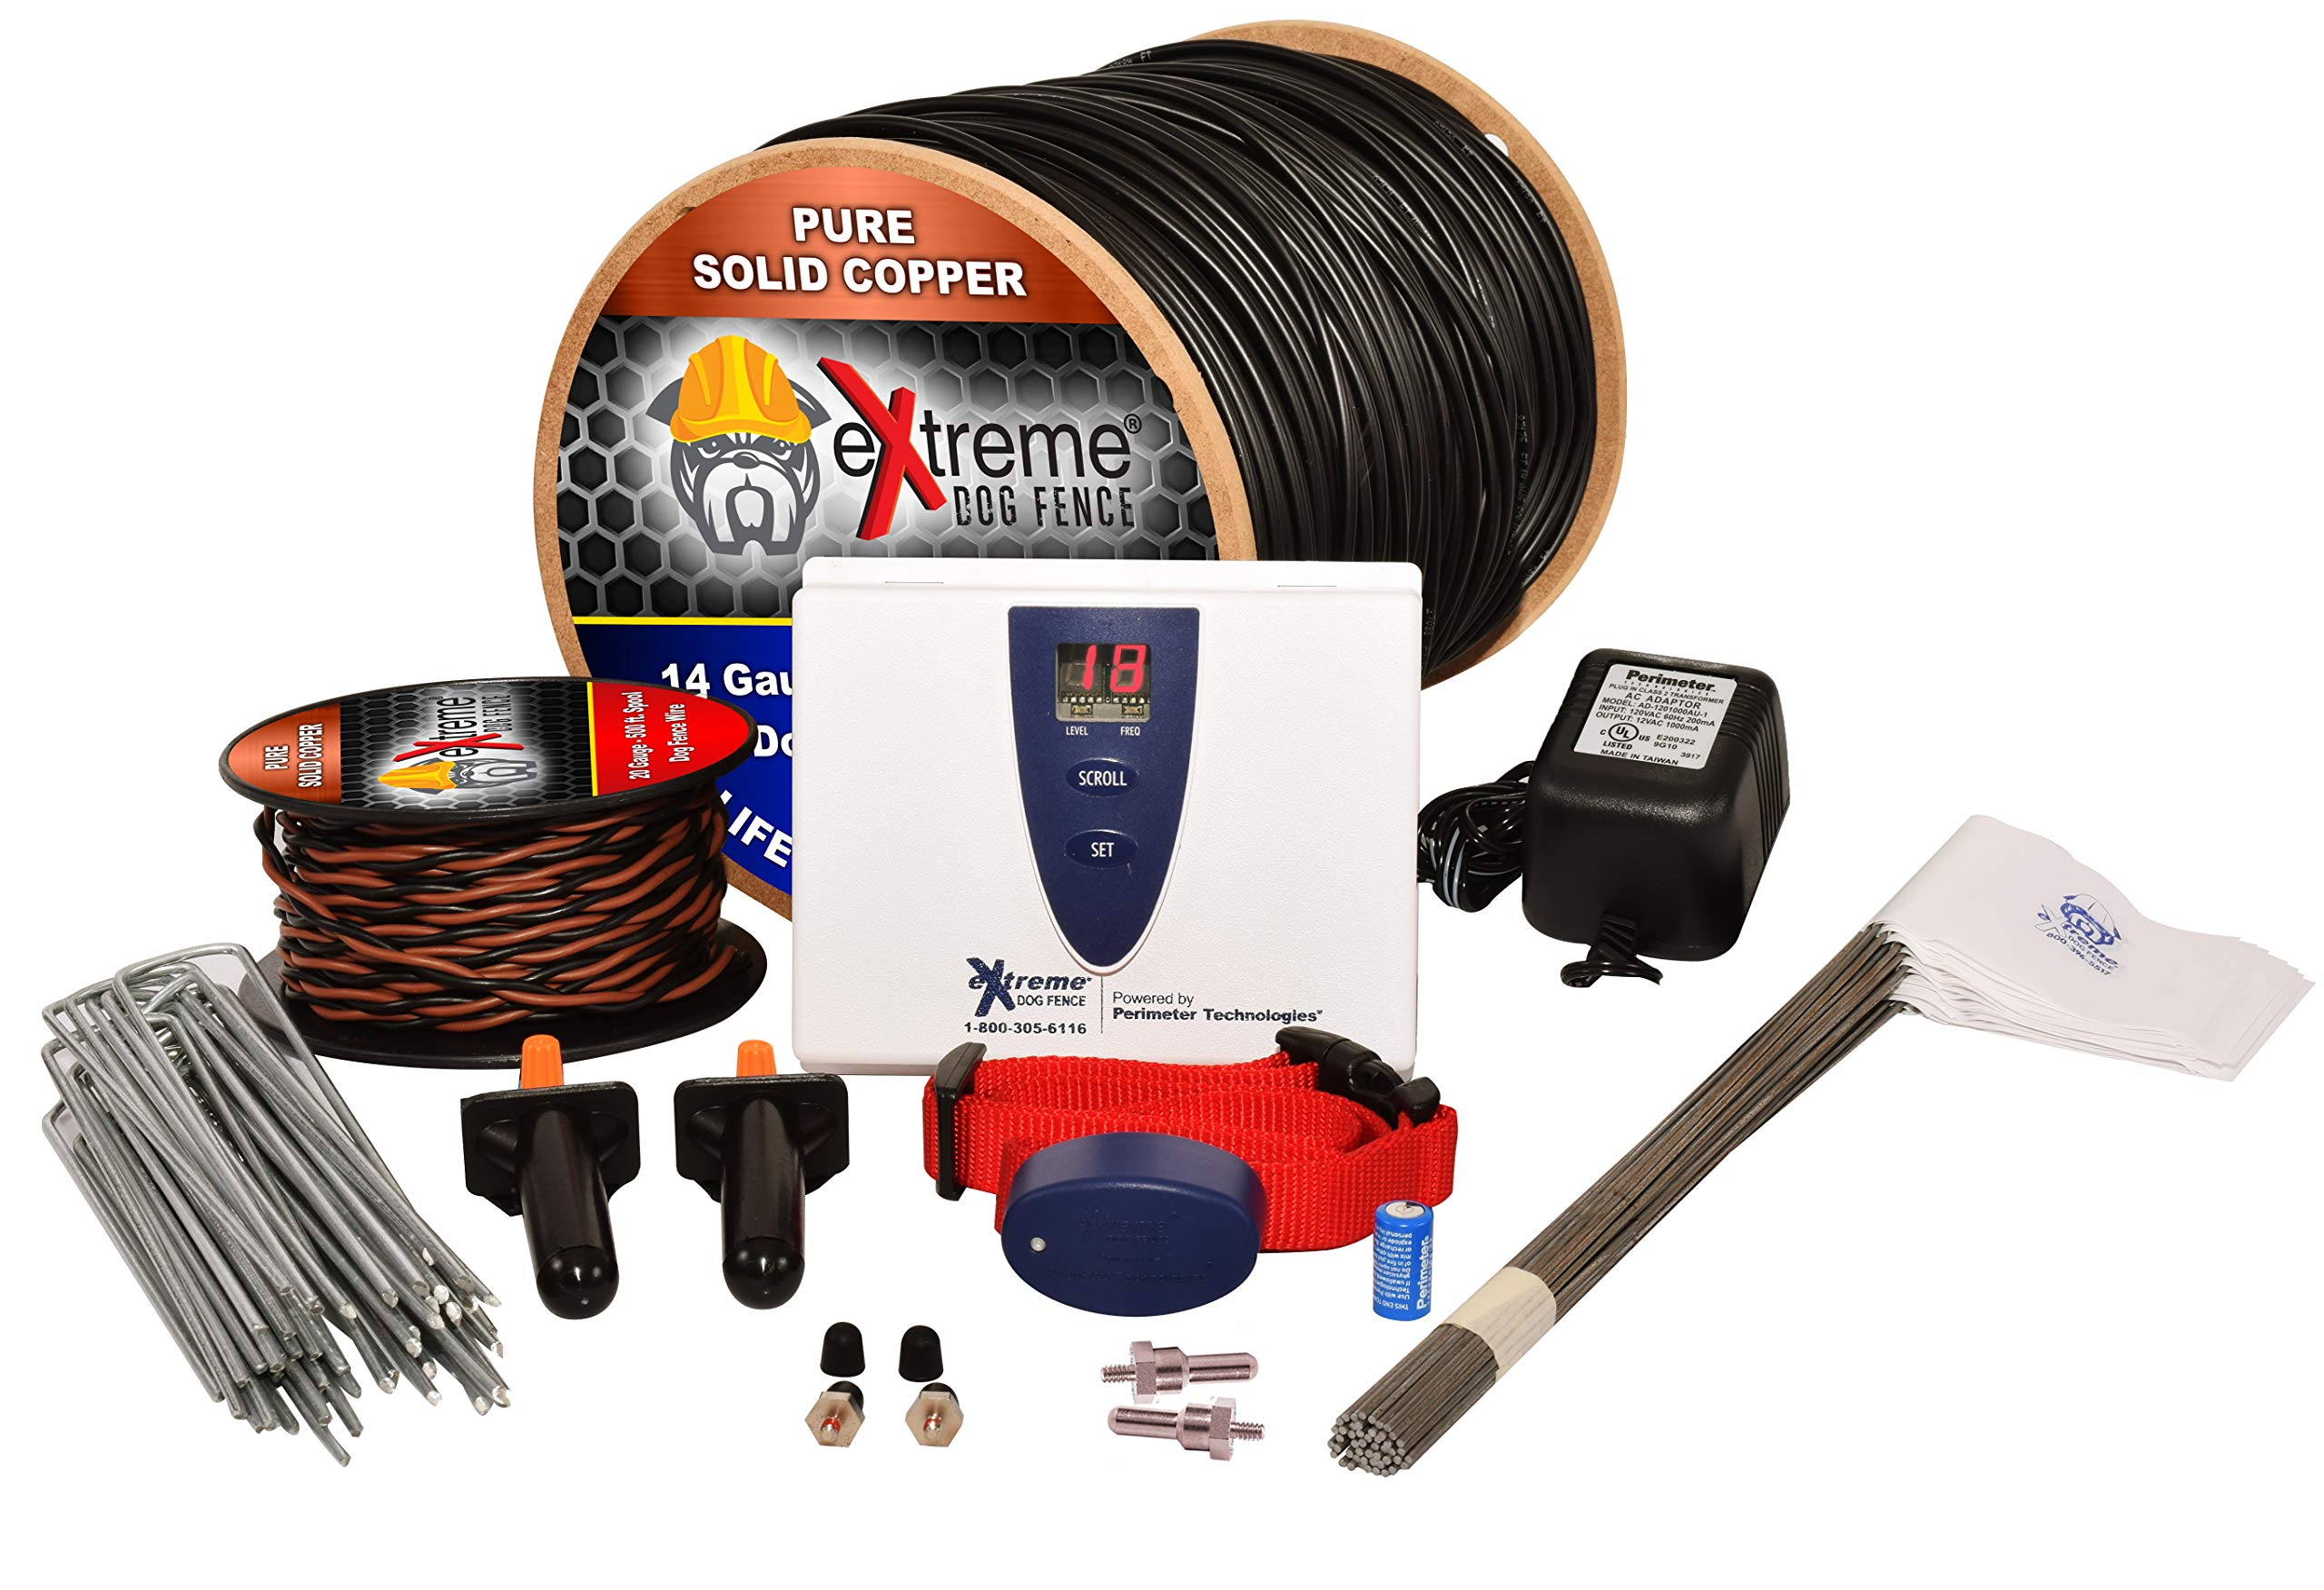 Extreme Dog Fence Ultimate Underground Electric Dog Fence - 1 Dog / 500' of 14 Gauge Boundary Wire PRO Grade D.I.Y. Pet Containment System Kit Powered by Perimeter Technologies by Extreme Dog Fence